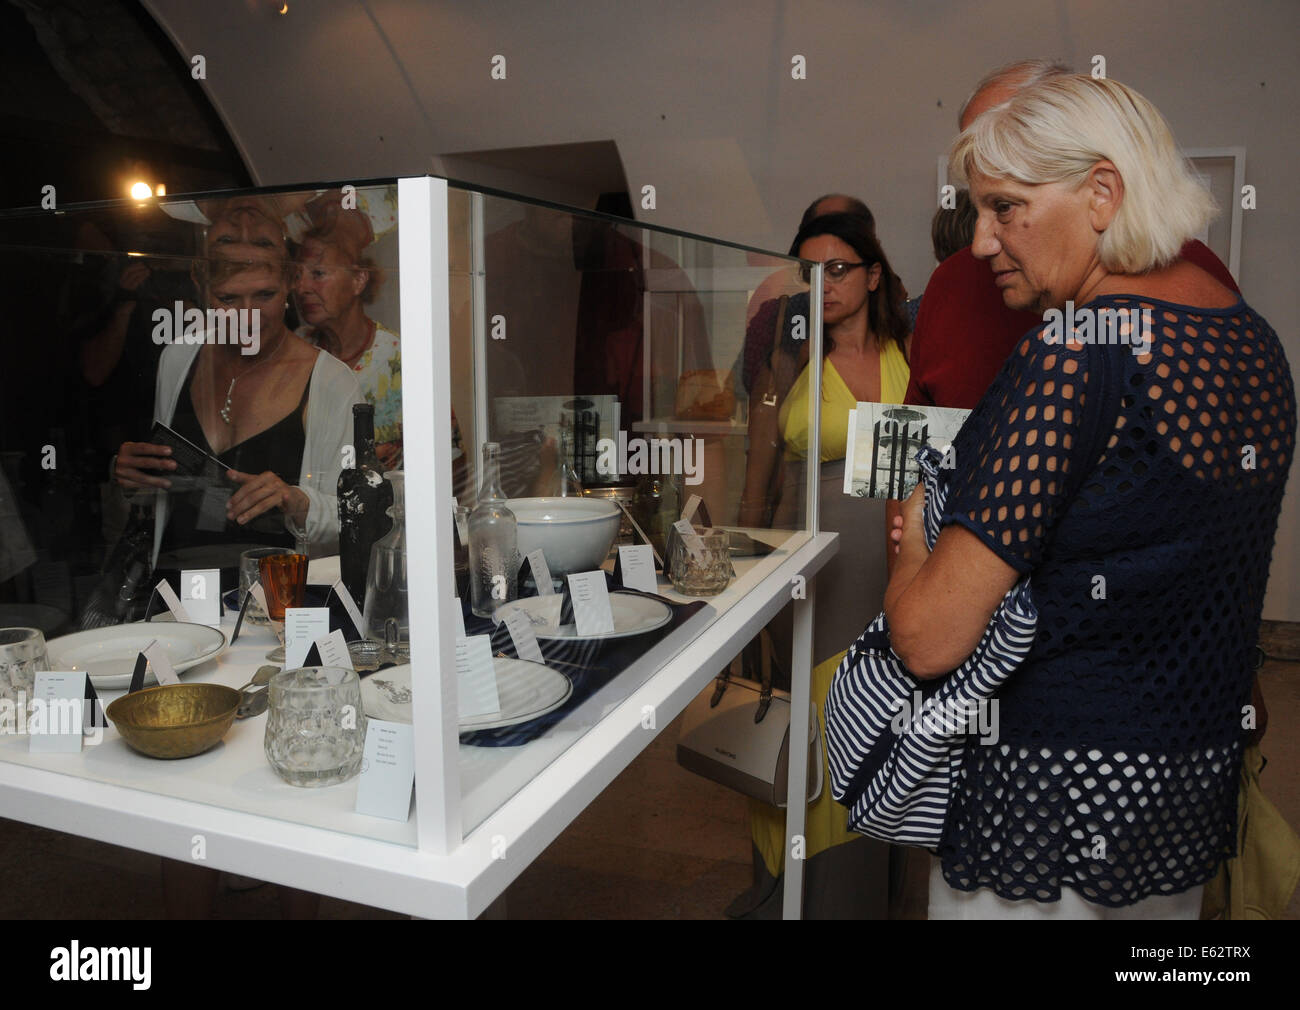 (140812) -- PULA, Aug. 12, 2014 (Xinhua) -- Visitors look at the displays during an exhibition marking the 100th - Stock Image